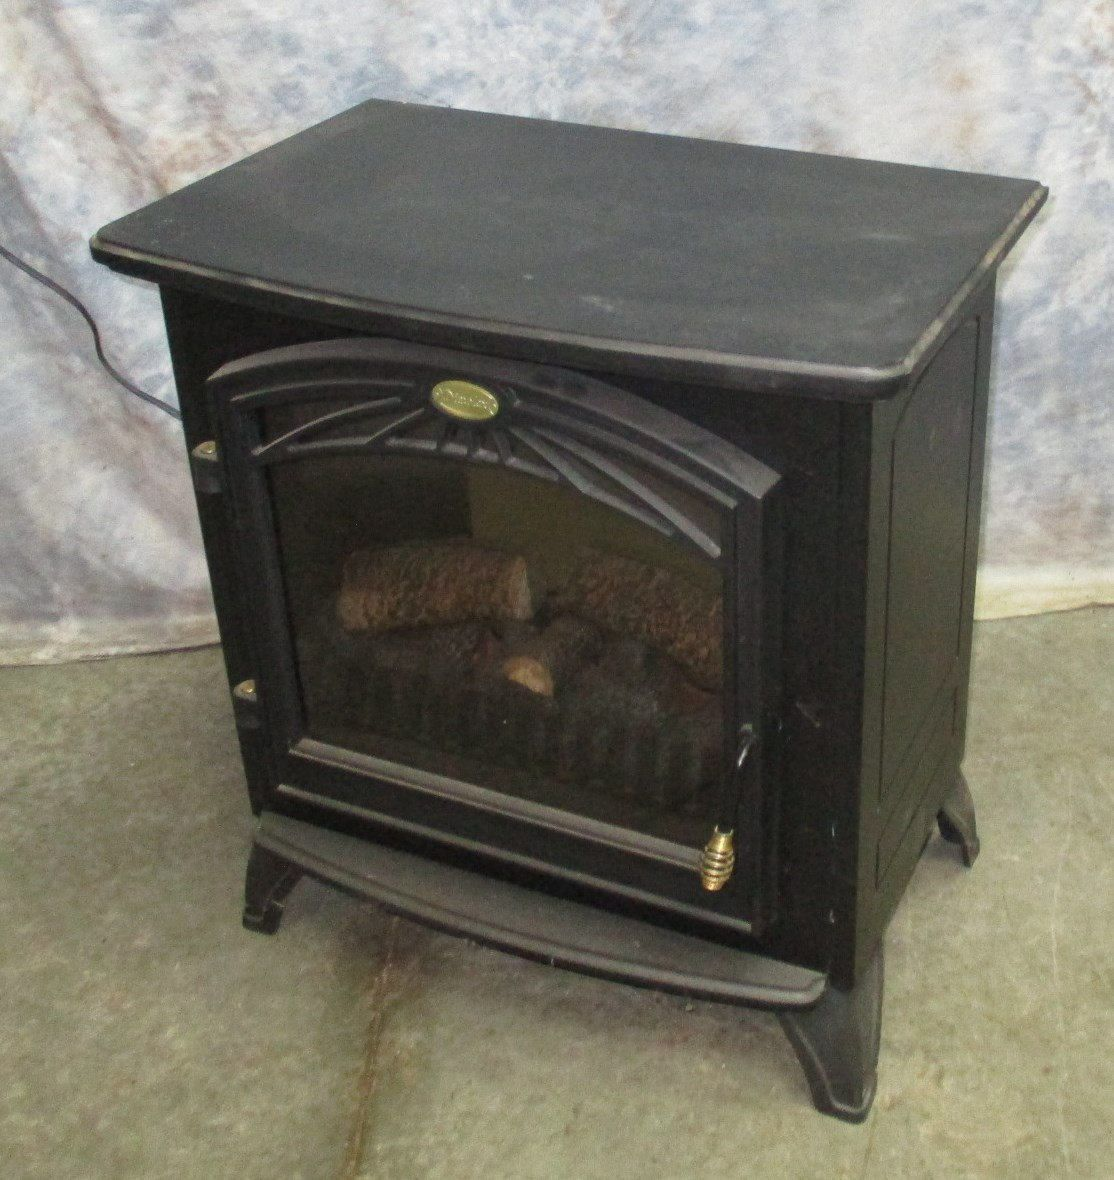 Dimplex Electric Air Heater 120 V Fireplace Small Space Room